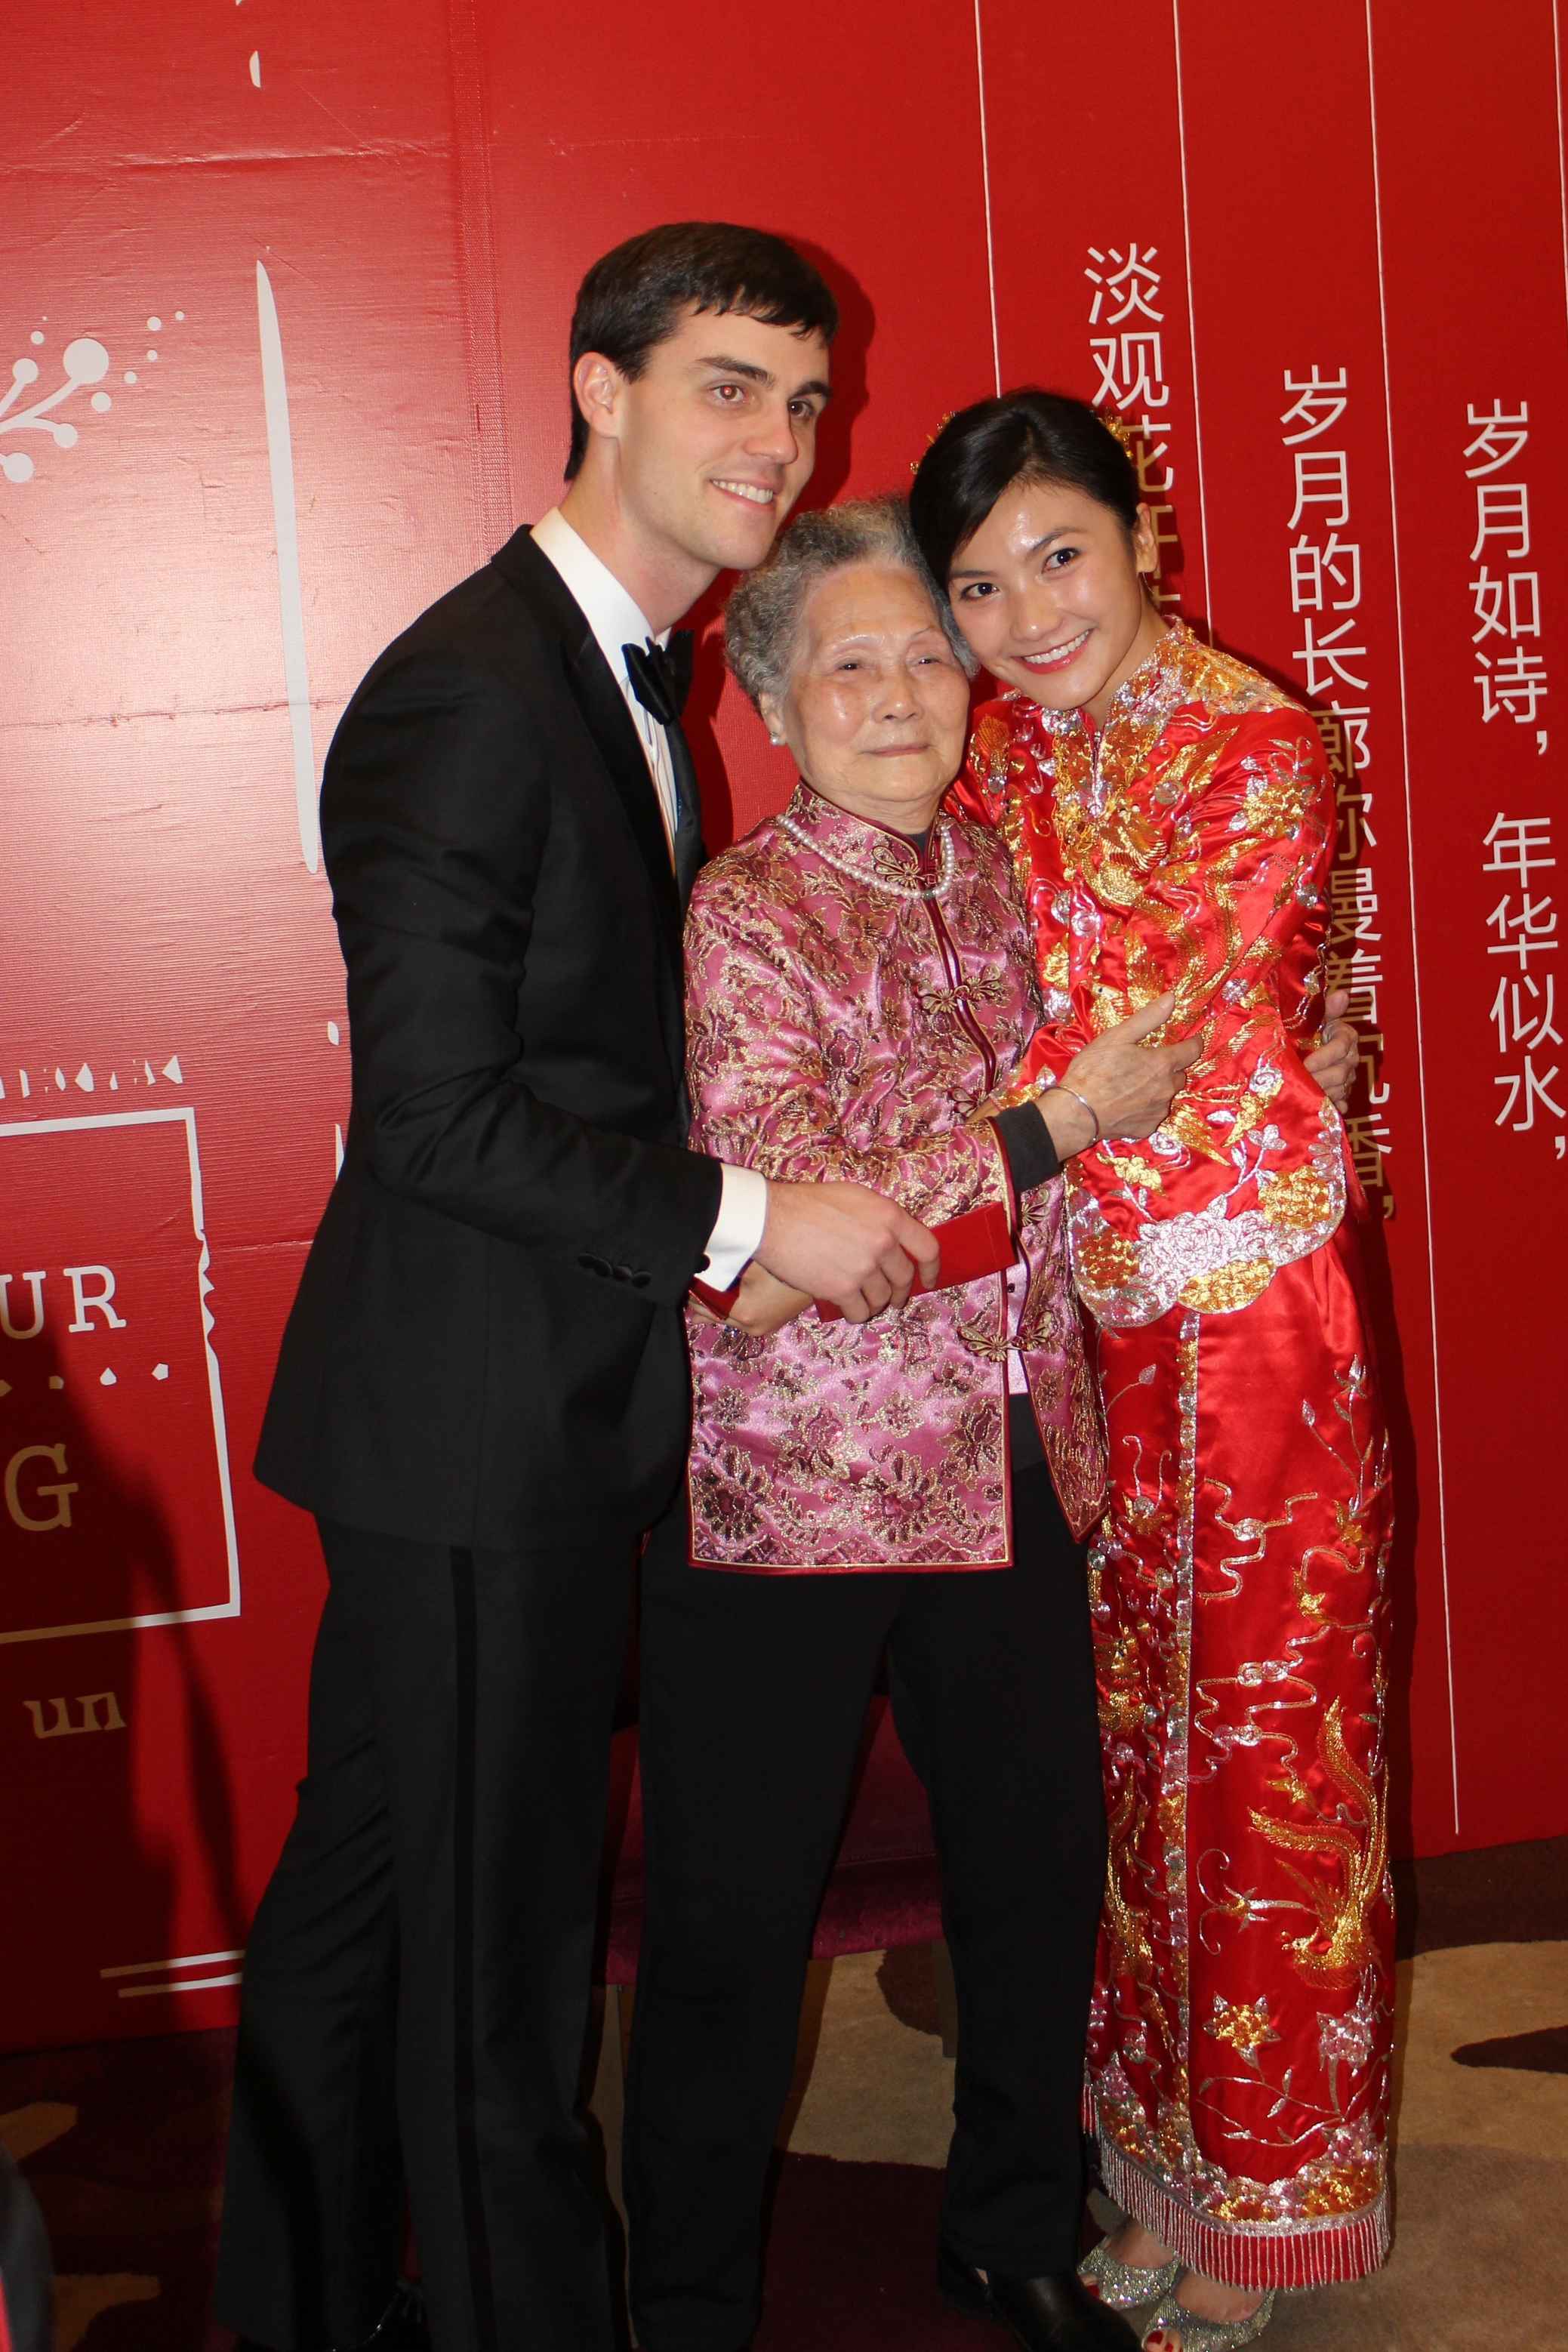 Love this! You can also see more of Jenny's traditional Chinese two-piece outfit.